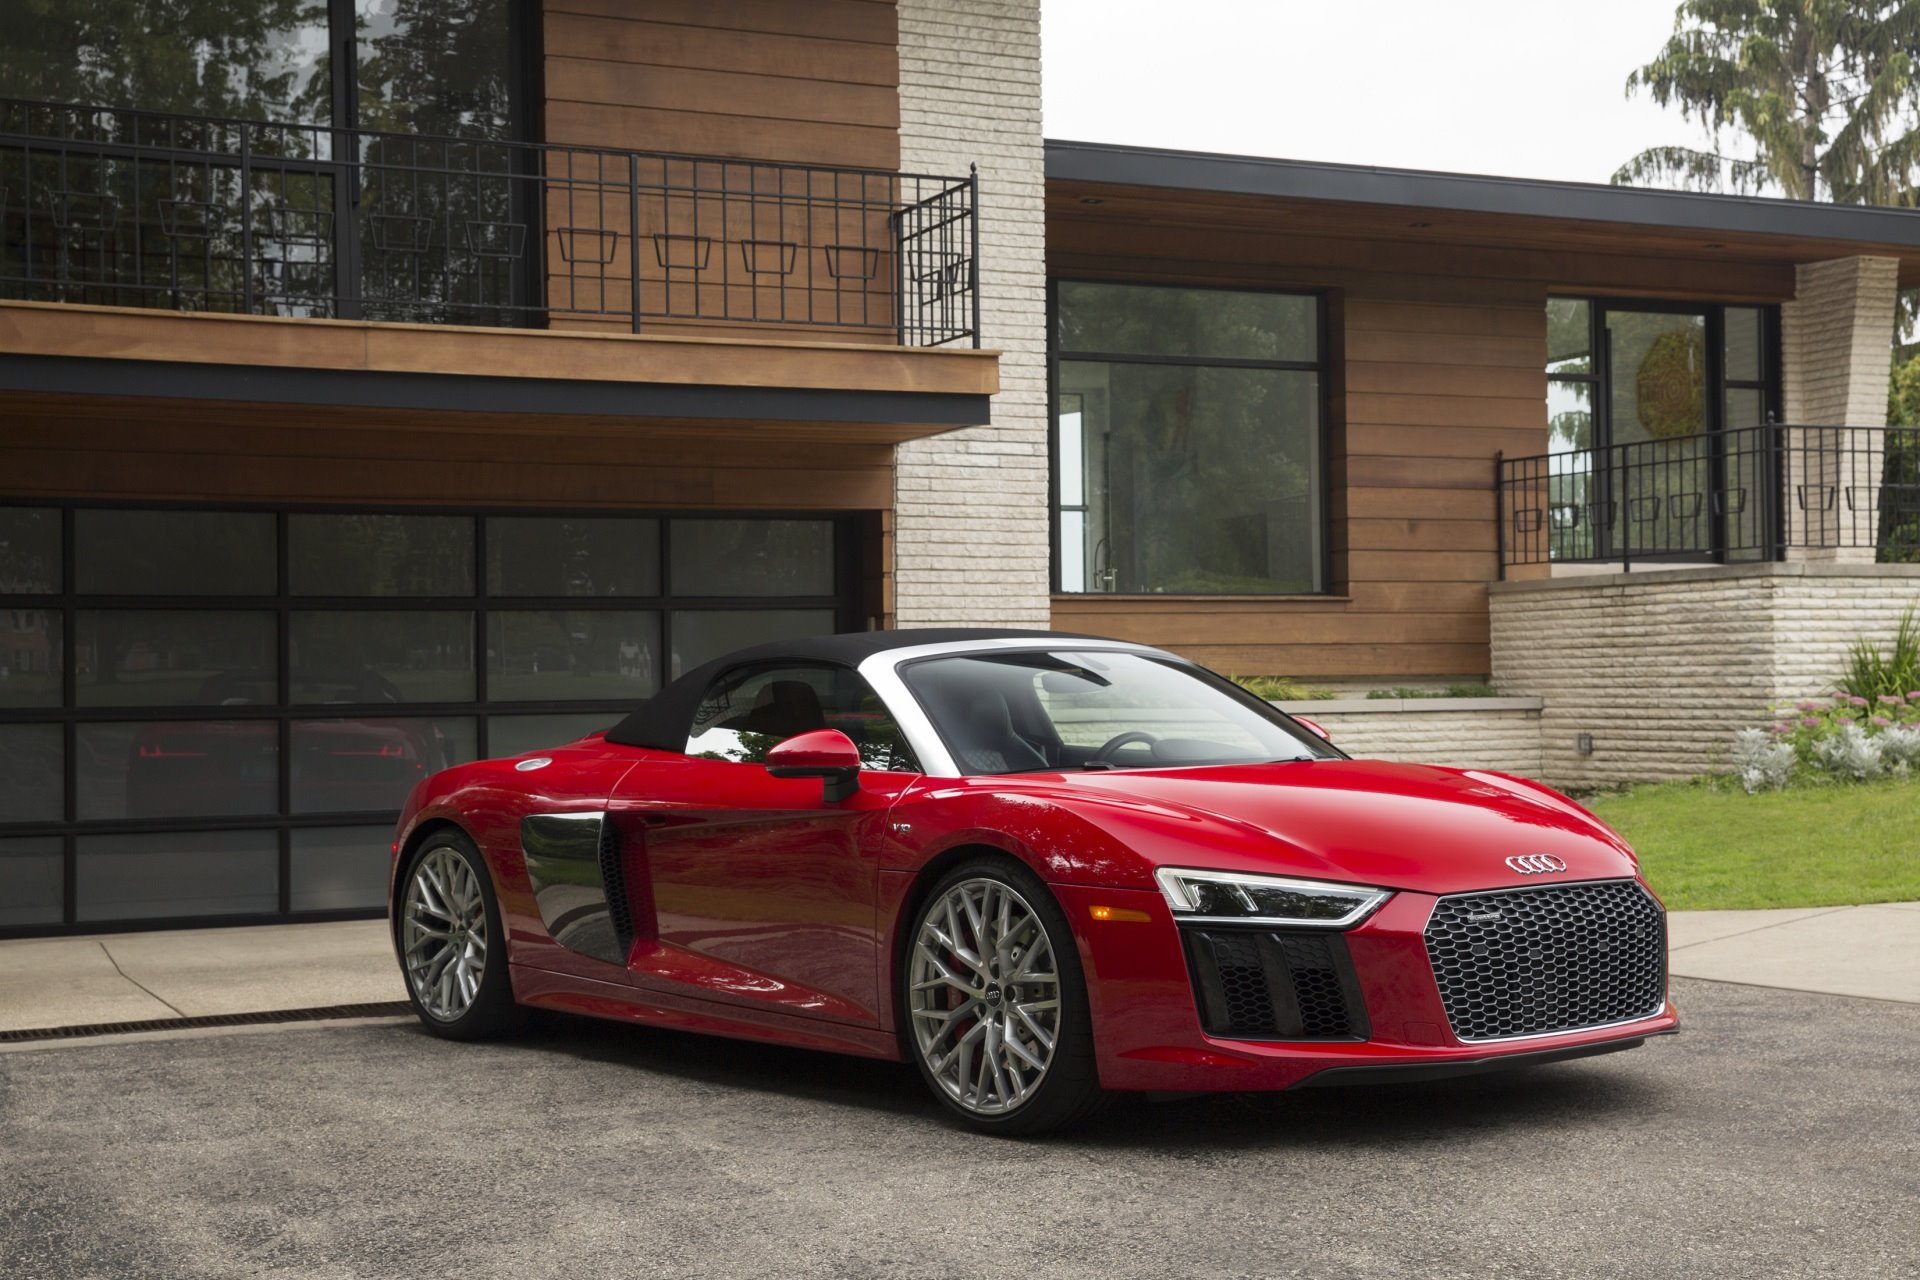 New 2020 Audi R8 5.2 quattro V10 5.2 quattro V10 for sale $169,900 at M and V Leasing in Brooklyn NY 11223 1